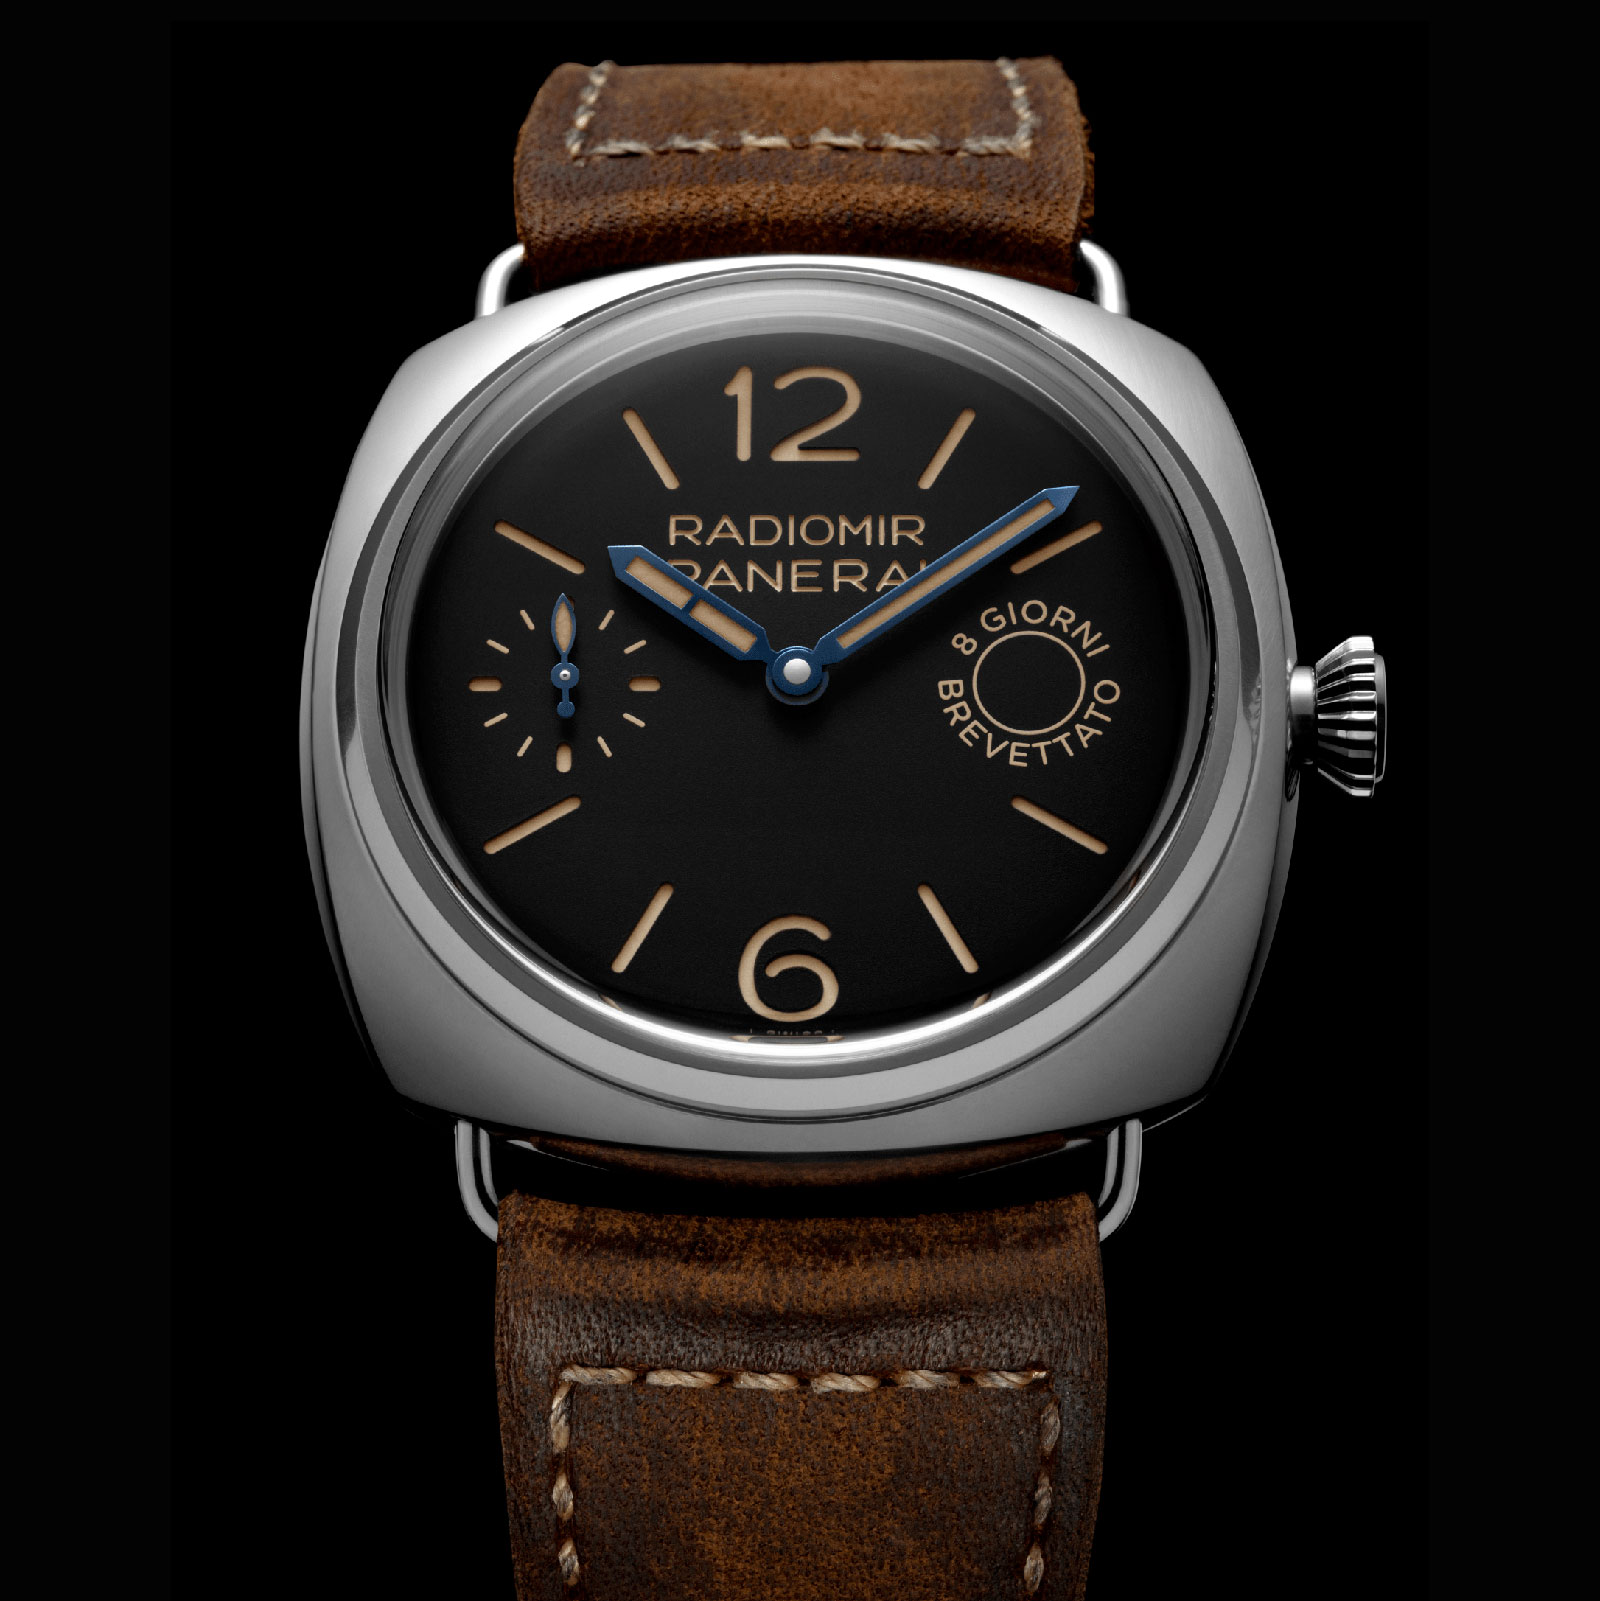 Second Hand Watches >> Panerai Introduces the Radiomir California PAM 931 ...